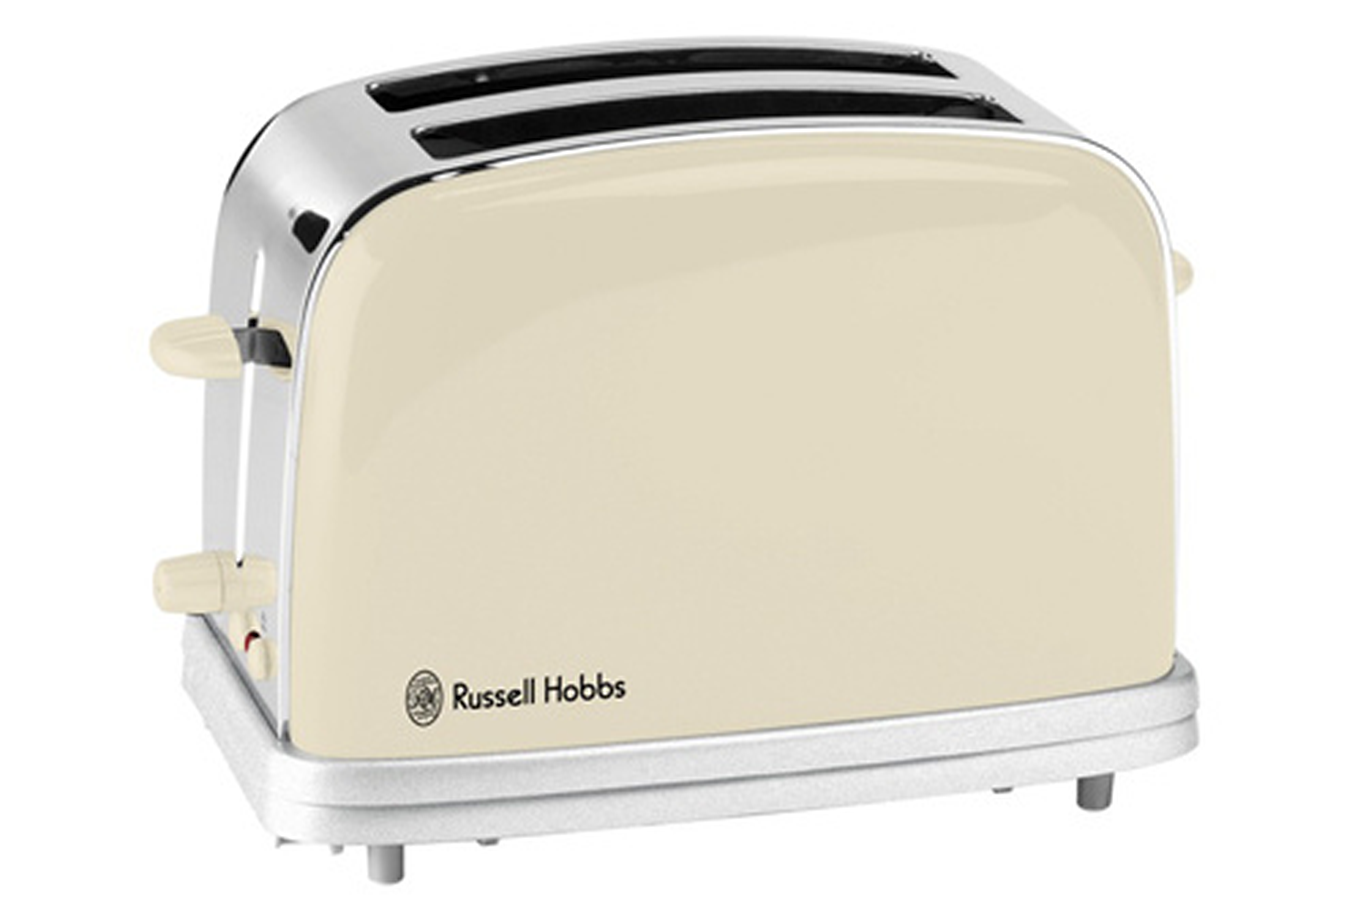 grille pain russell hobbs 18010 56 toaster creme 18010 56 toast creme 3201180 darty. Black Bedroom Furniture Sets. Home Design Ideas